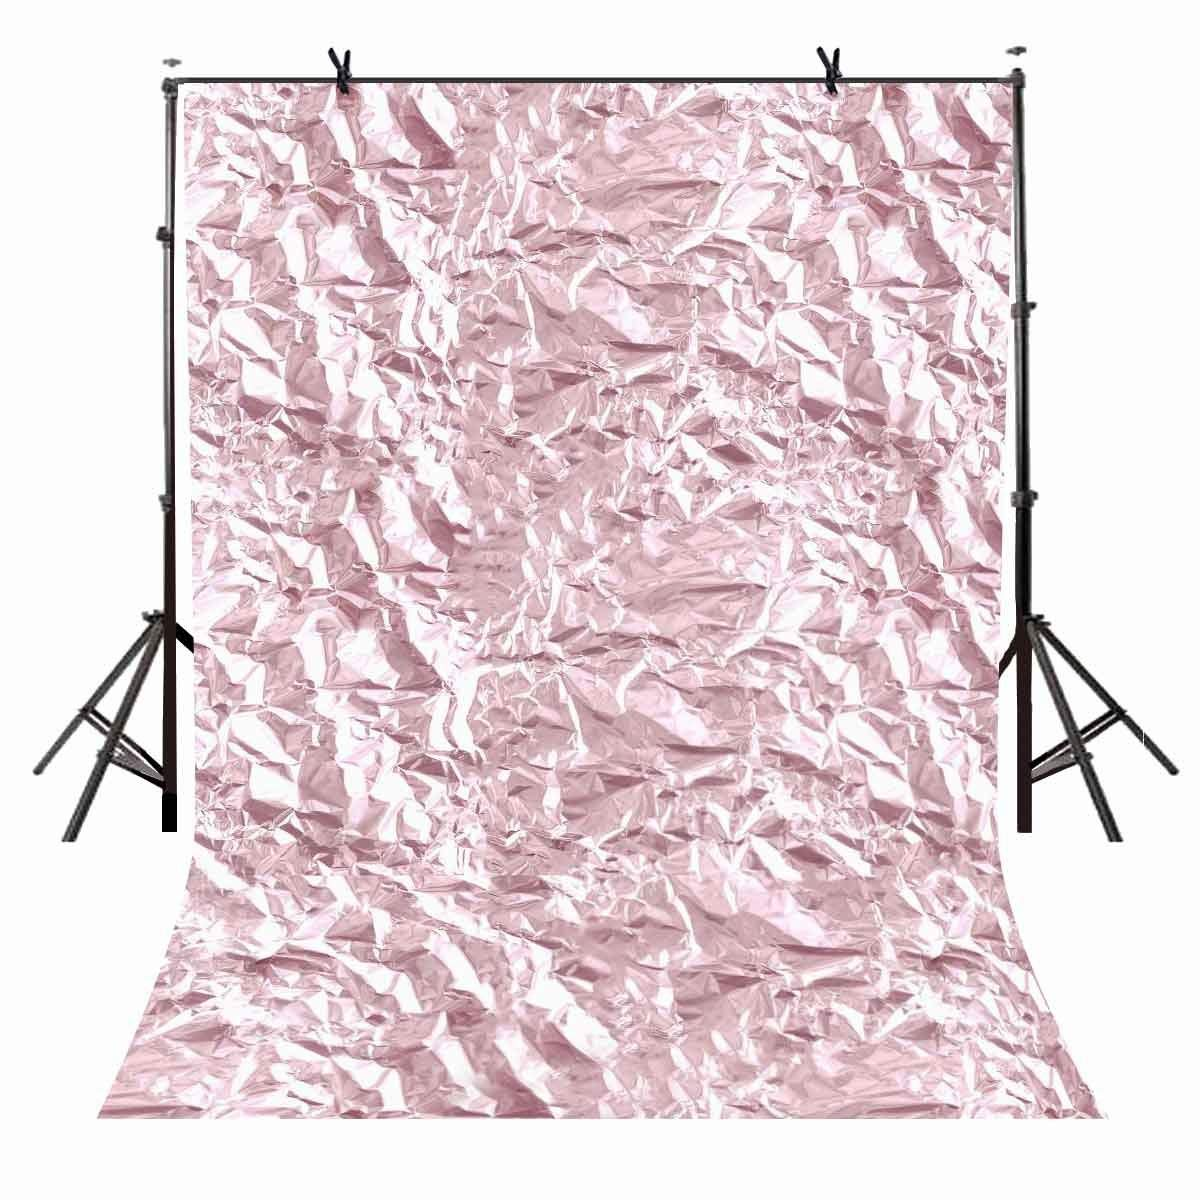 5x7ft Millennium Pink Backdrop Bright Wrinkles Plastic Paper Photography Background Studio Props